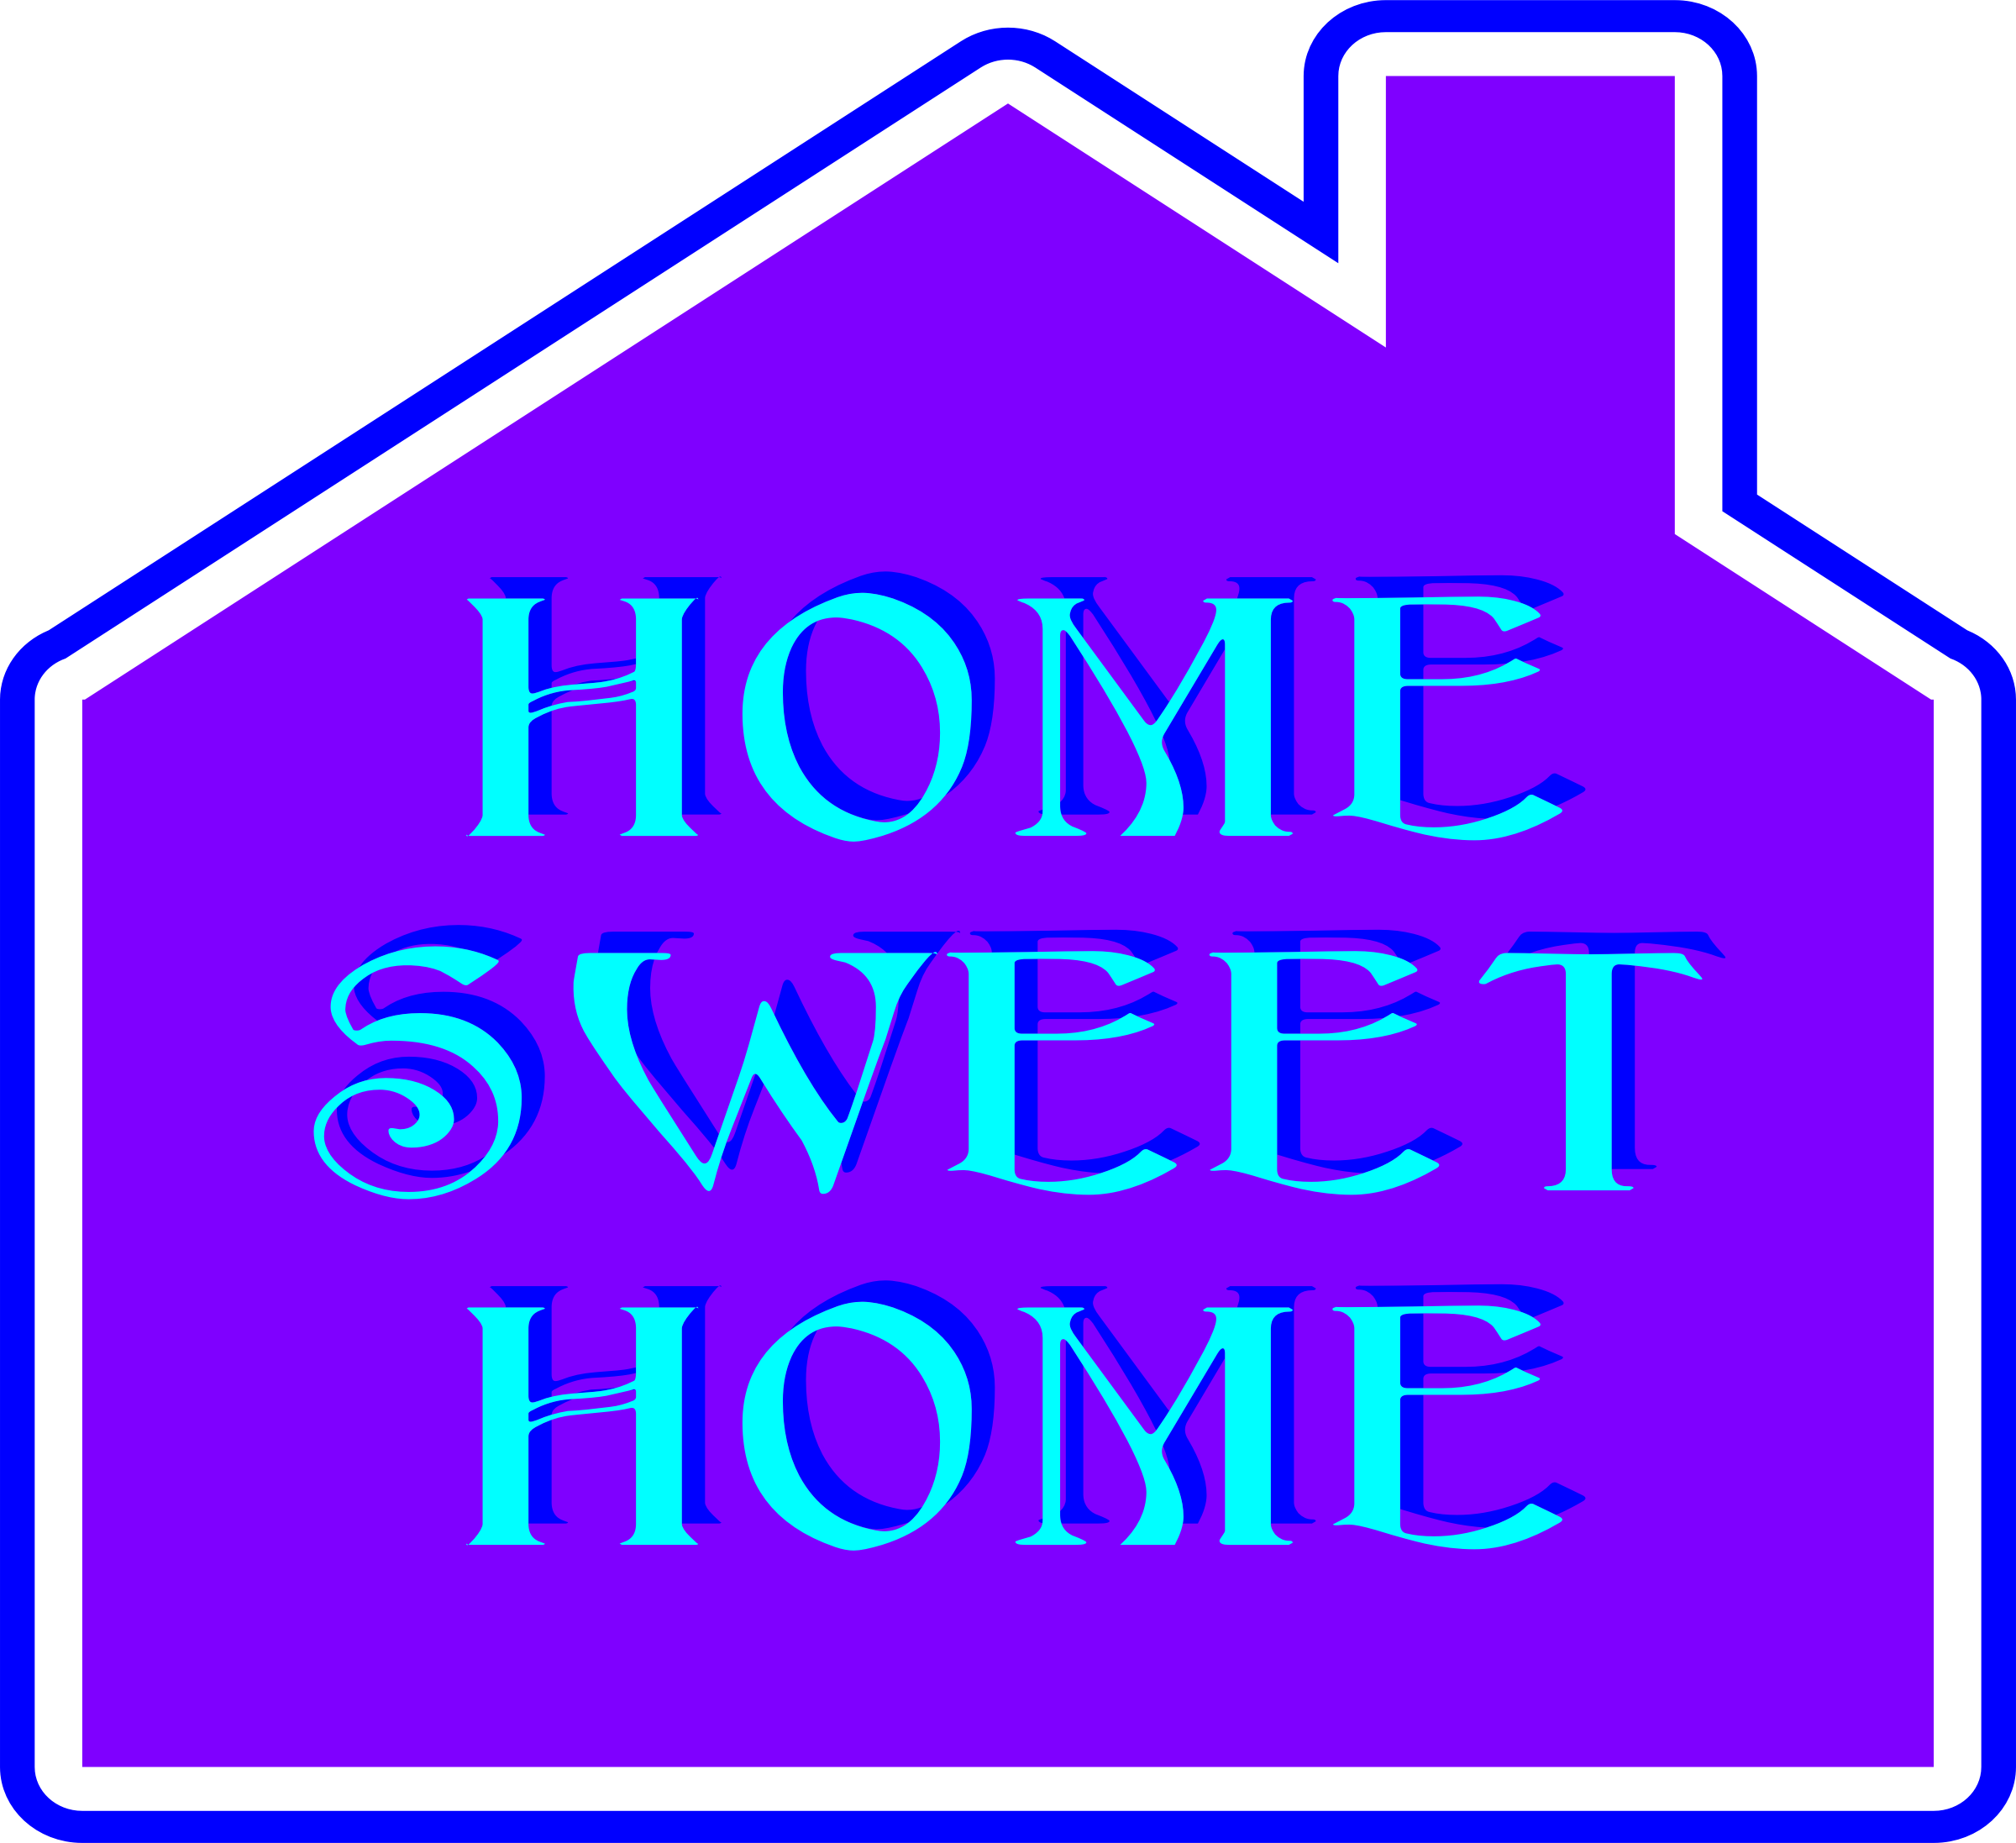 Home sweet home clipart png clip art stock Clipart - Home Sweet Home 2 clip art stock